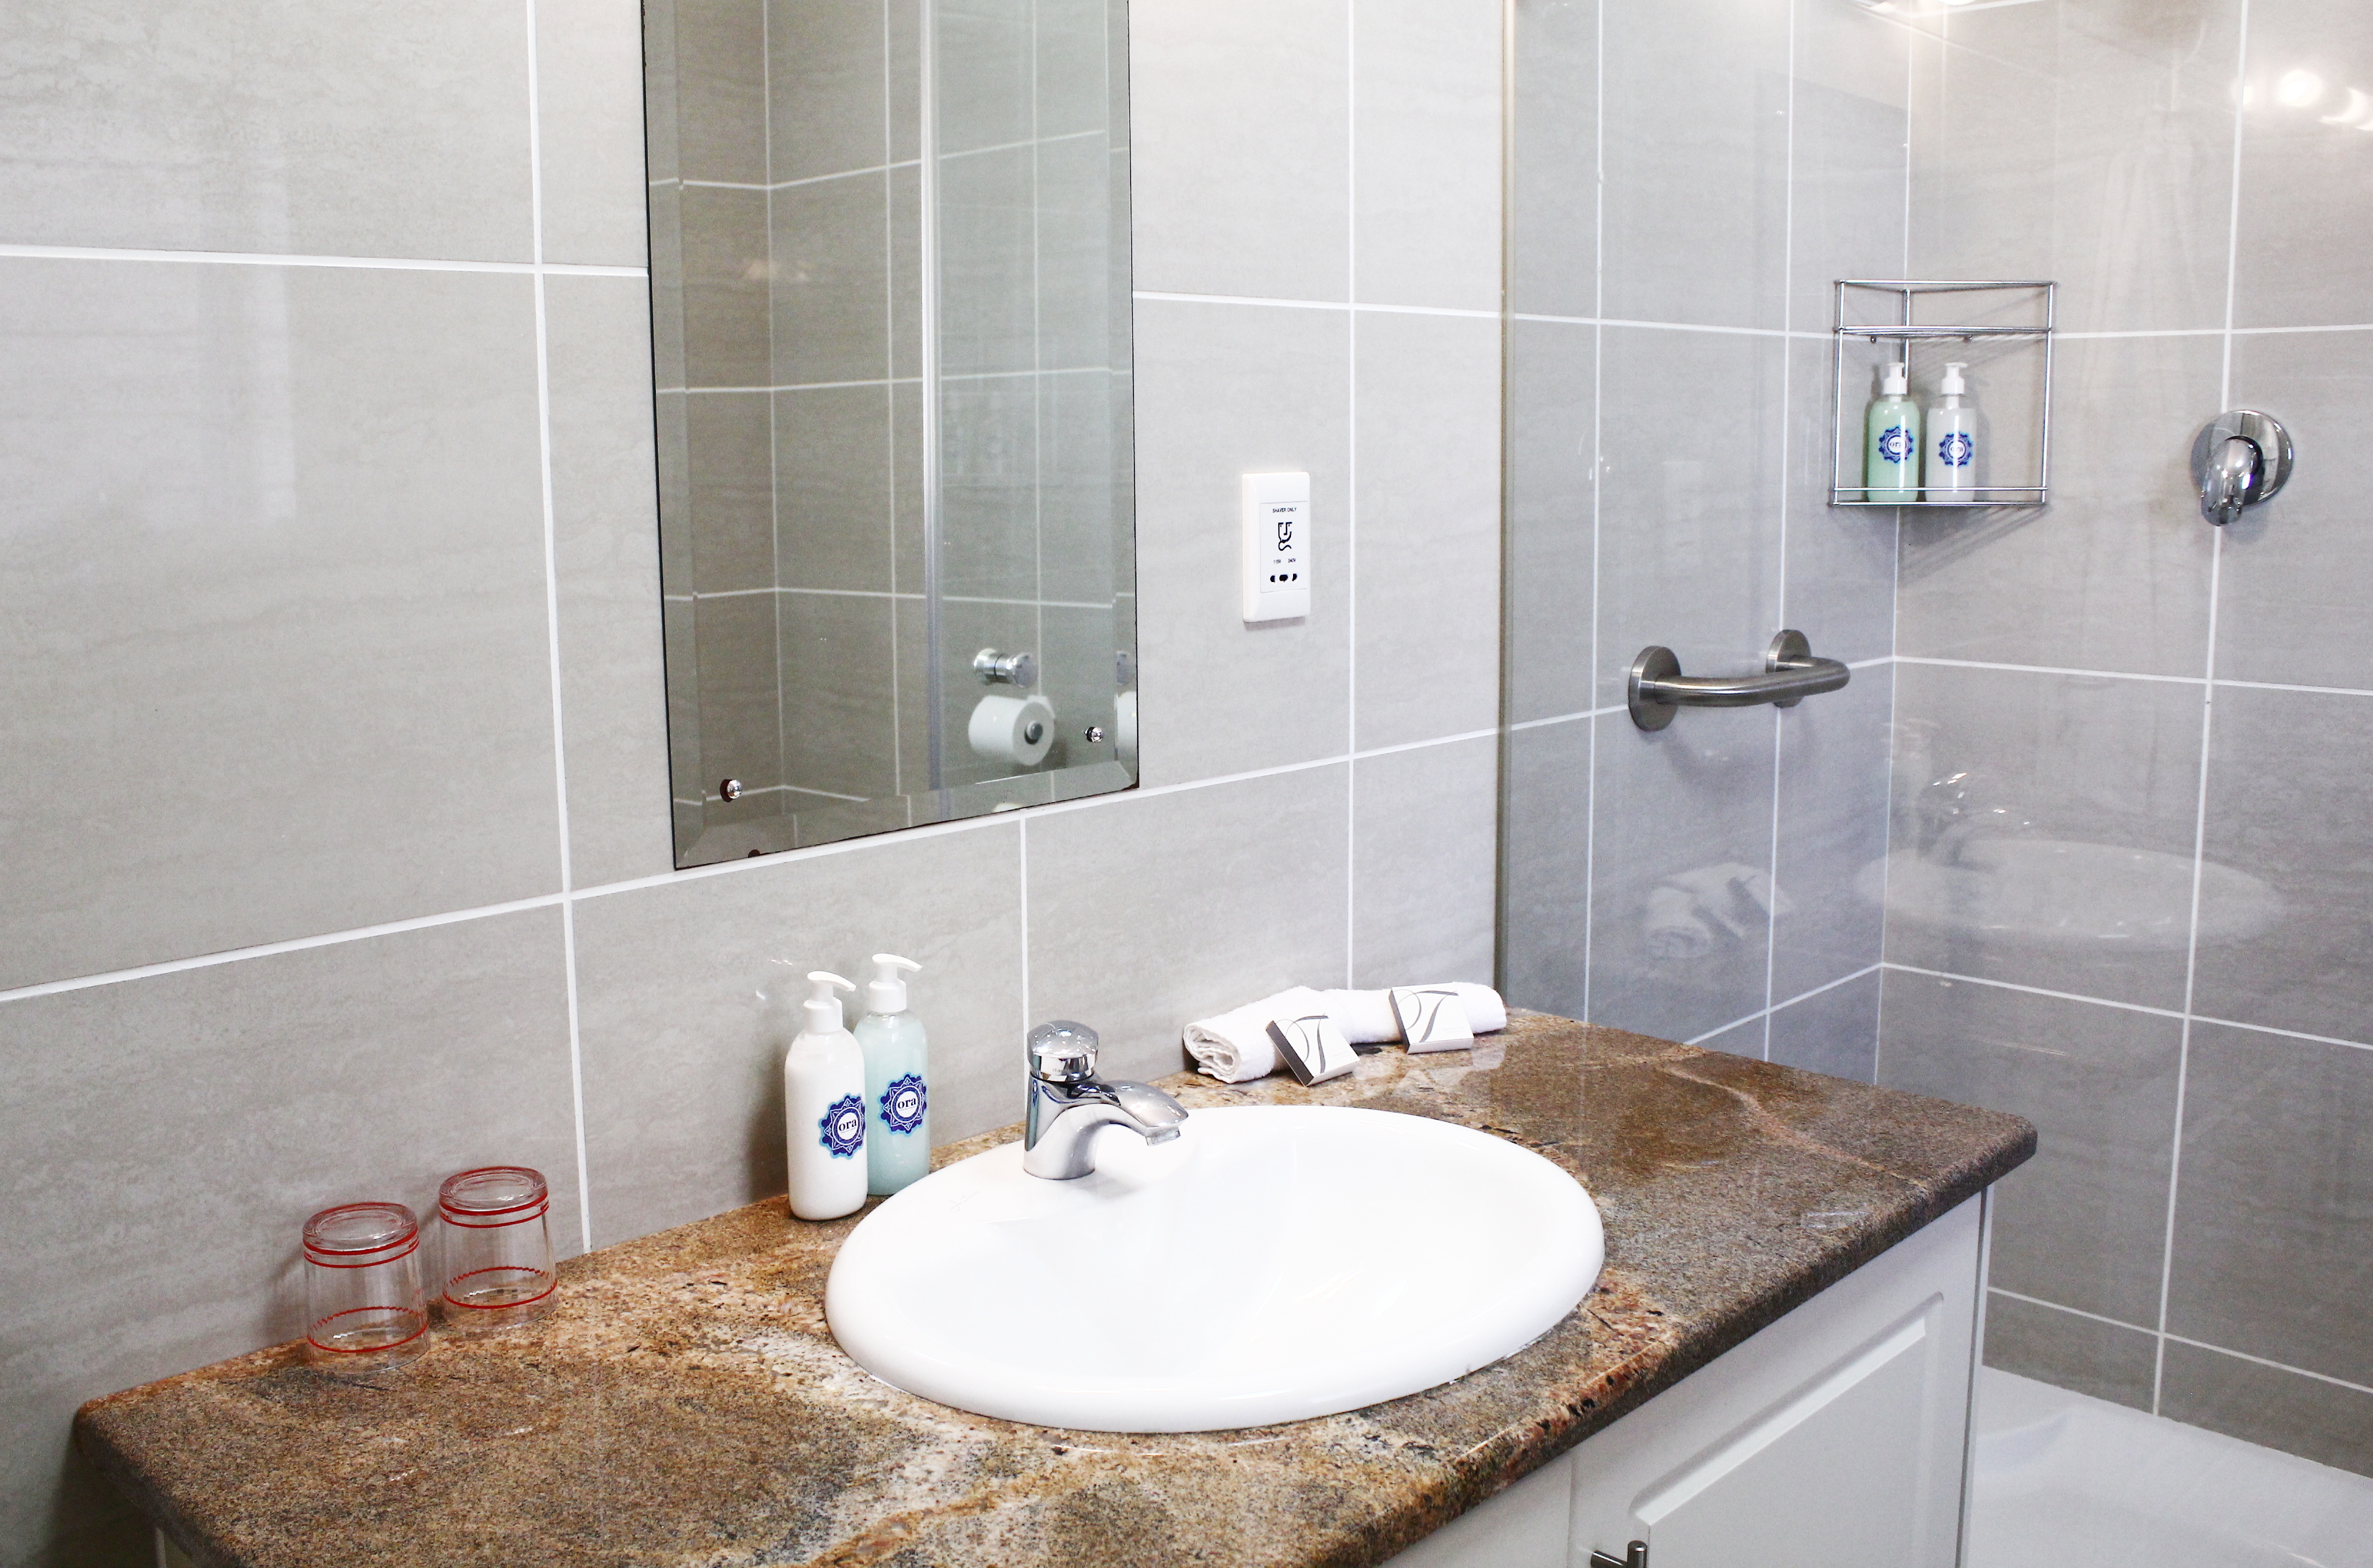 Bathroom sink and a shower with hand soap and hand cream